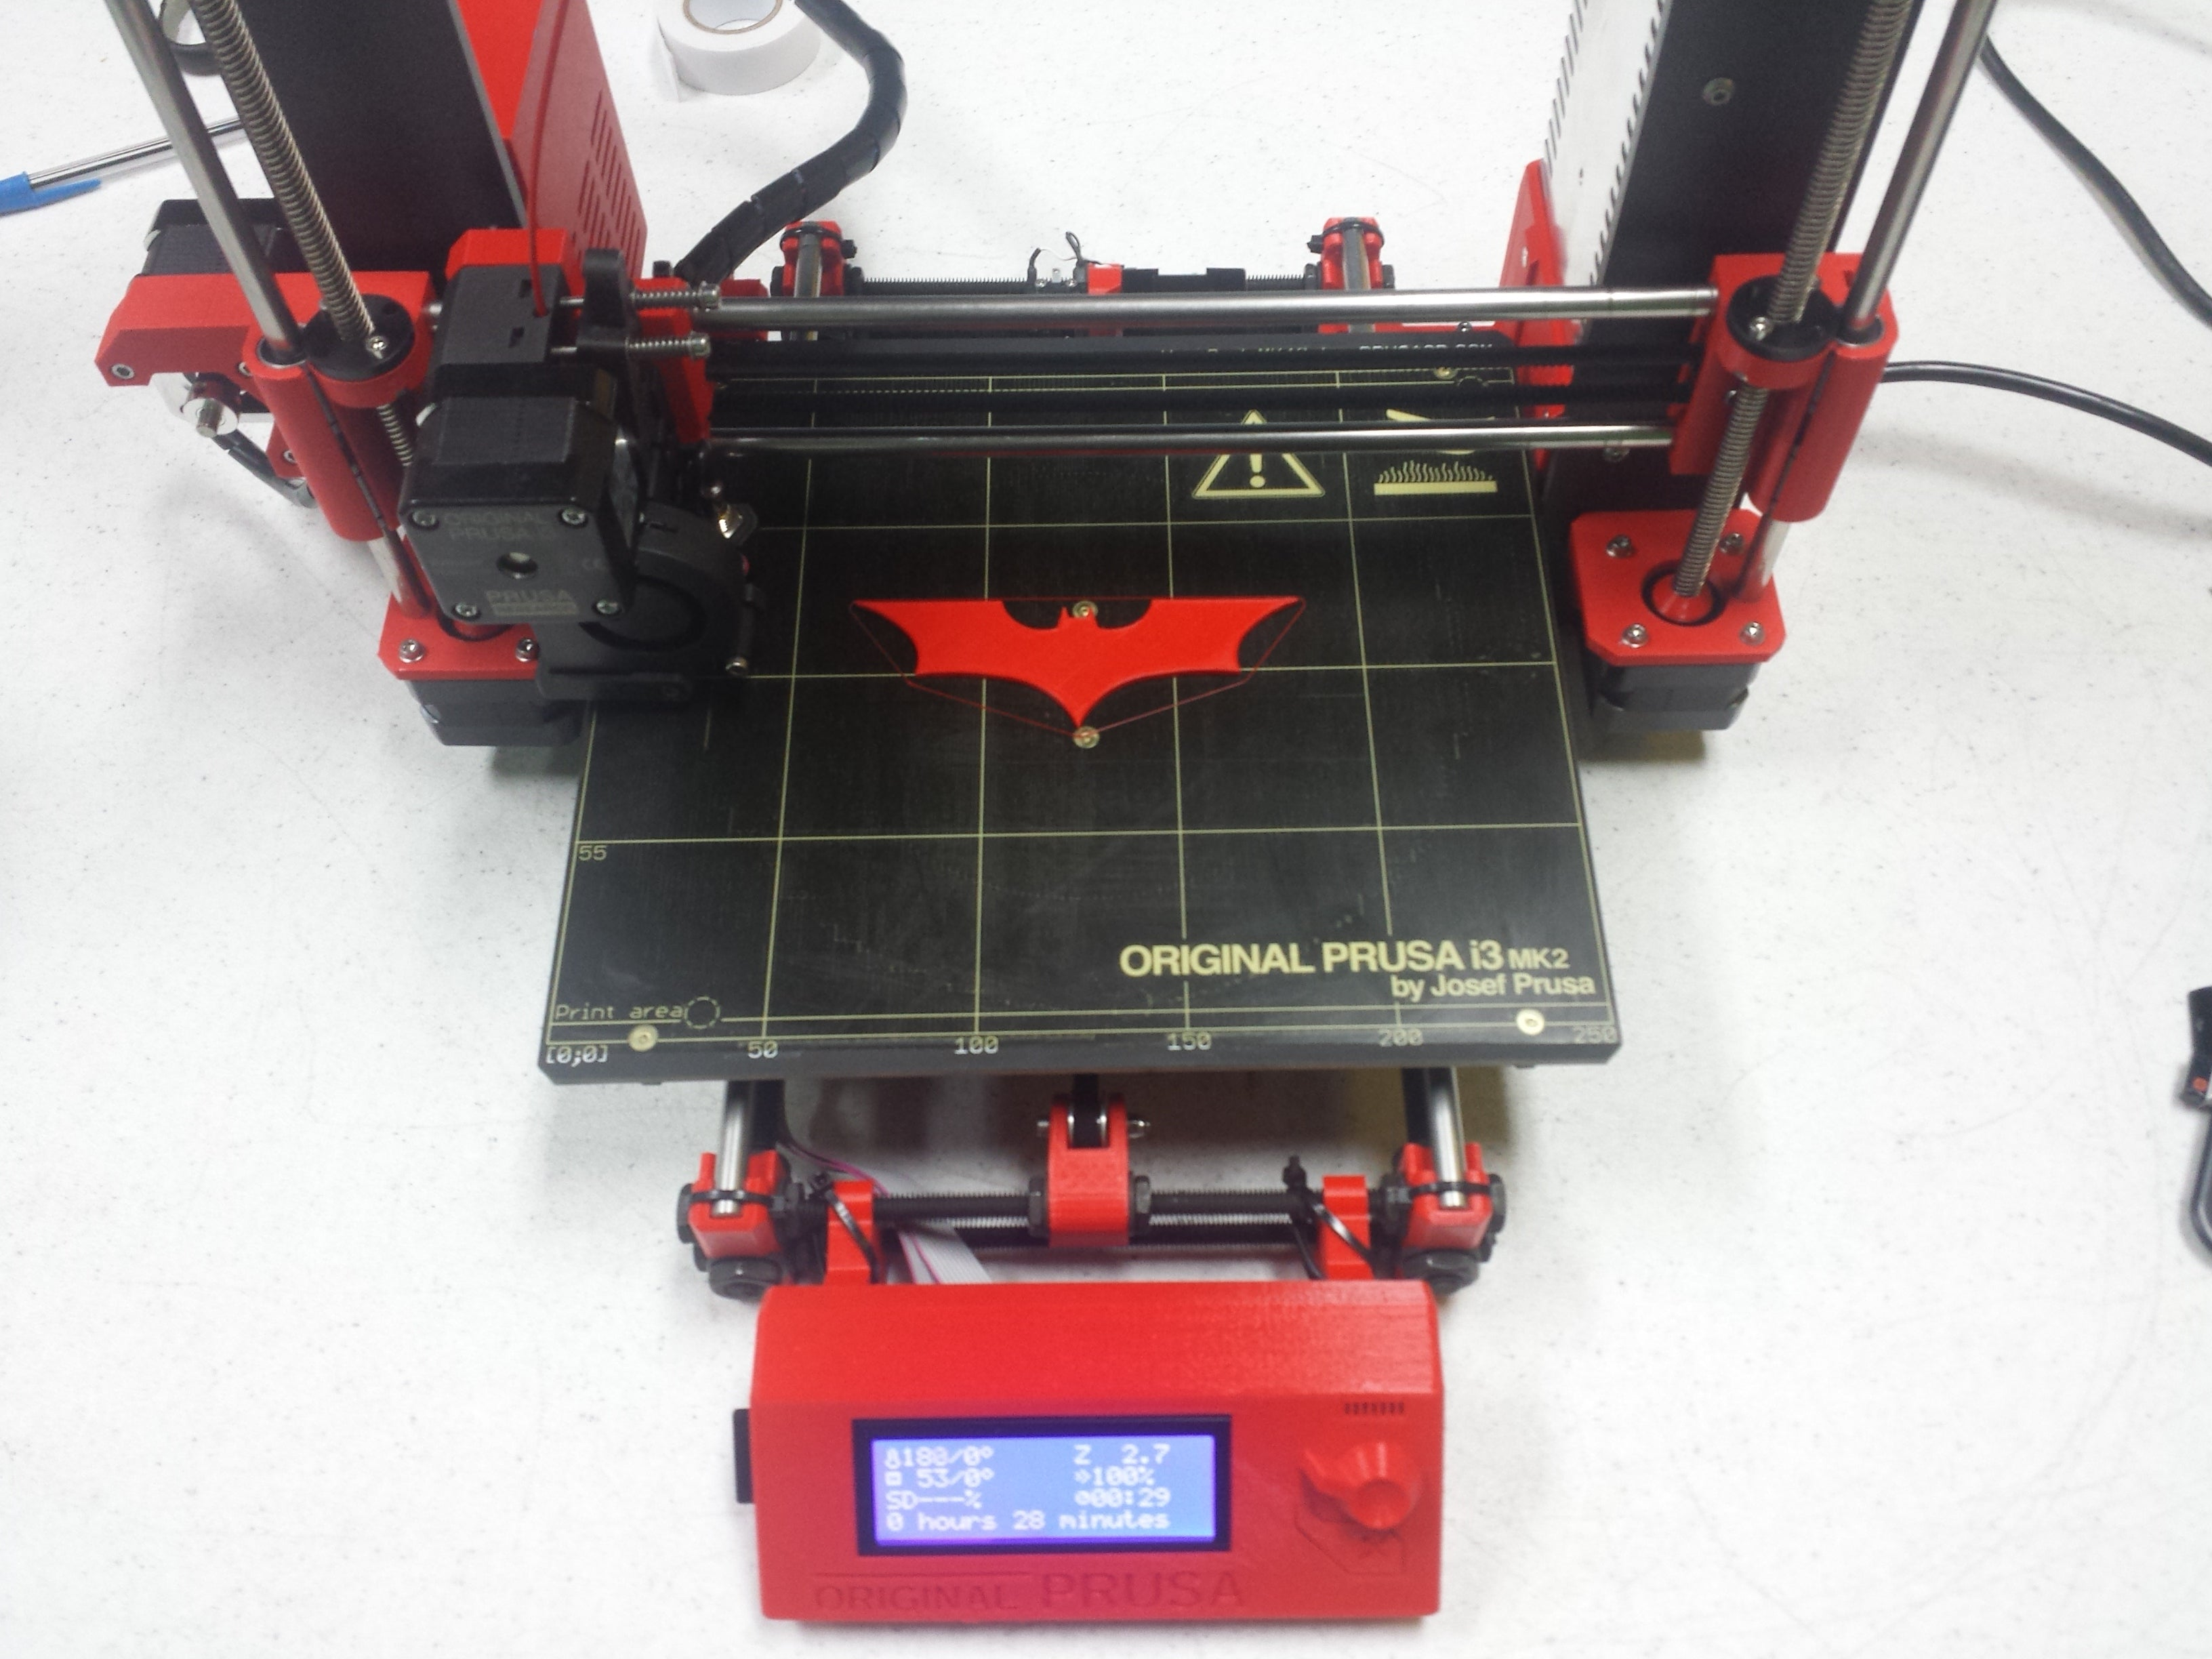 Picture of Original Prusa i3 MK2 red 3D printer printing Batman symbol